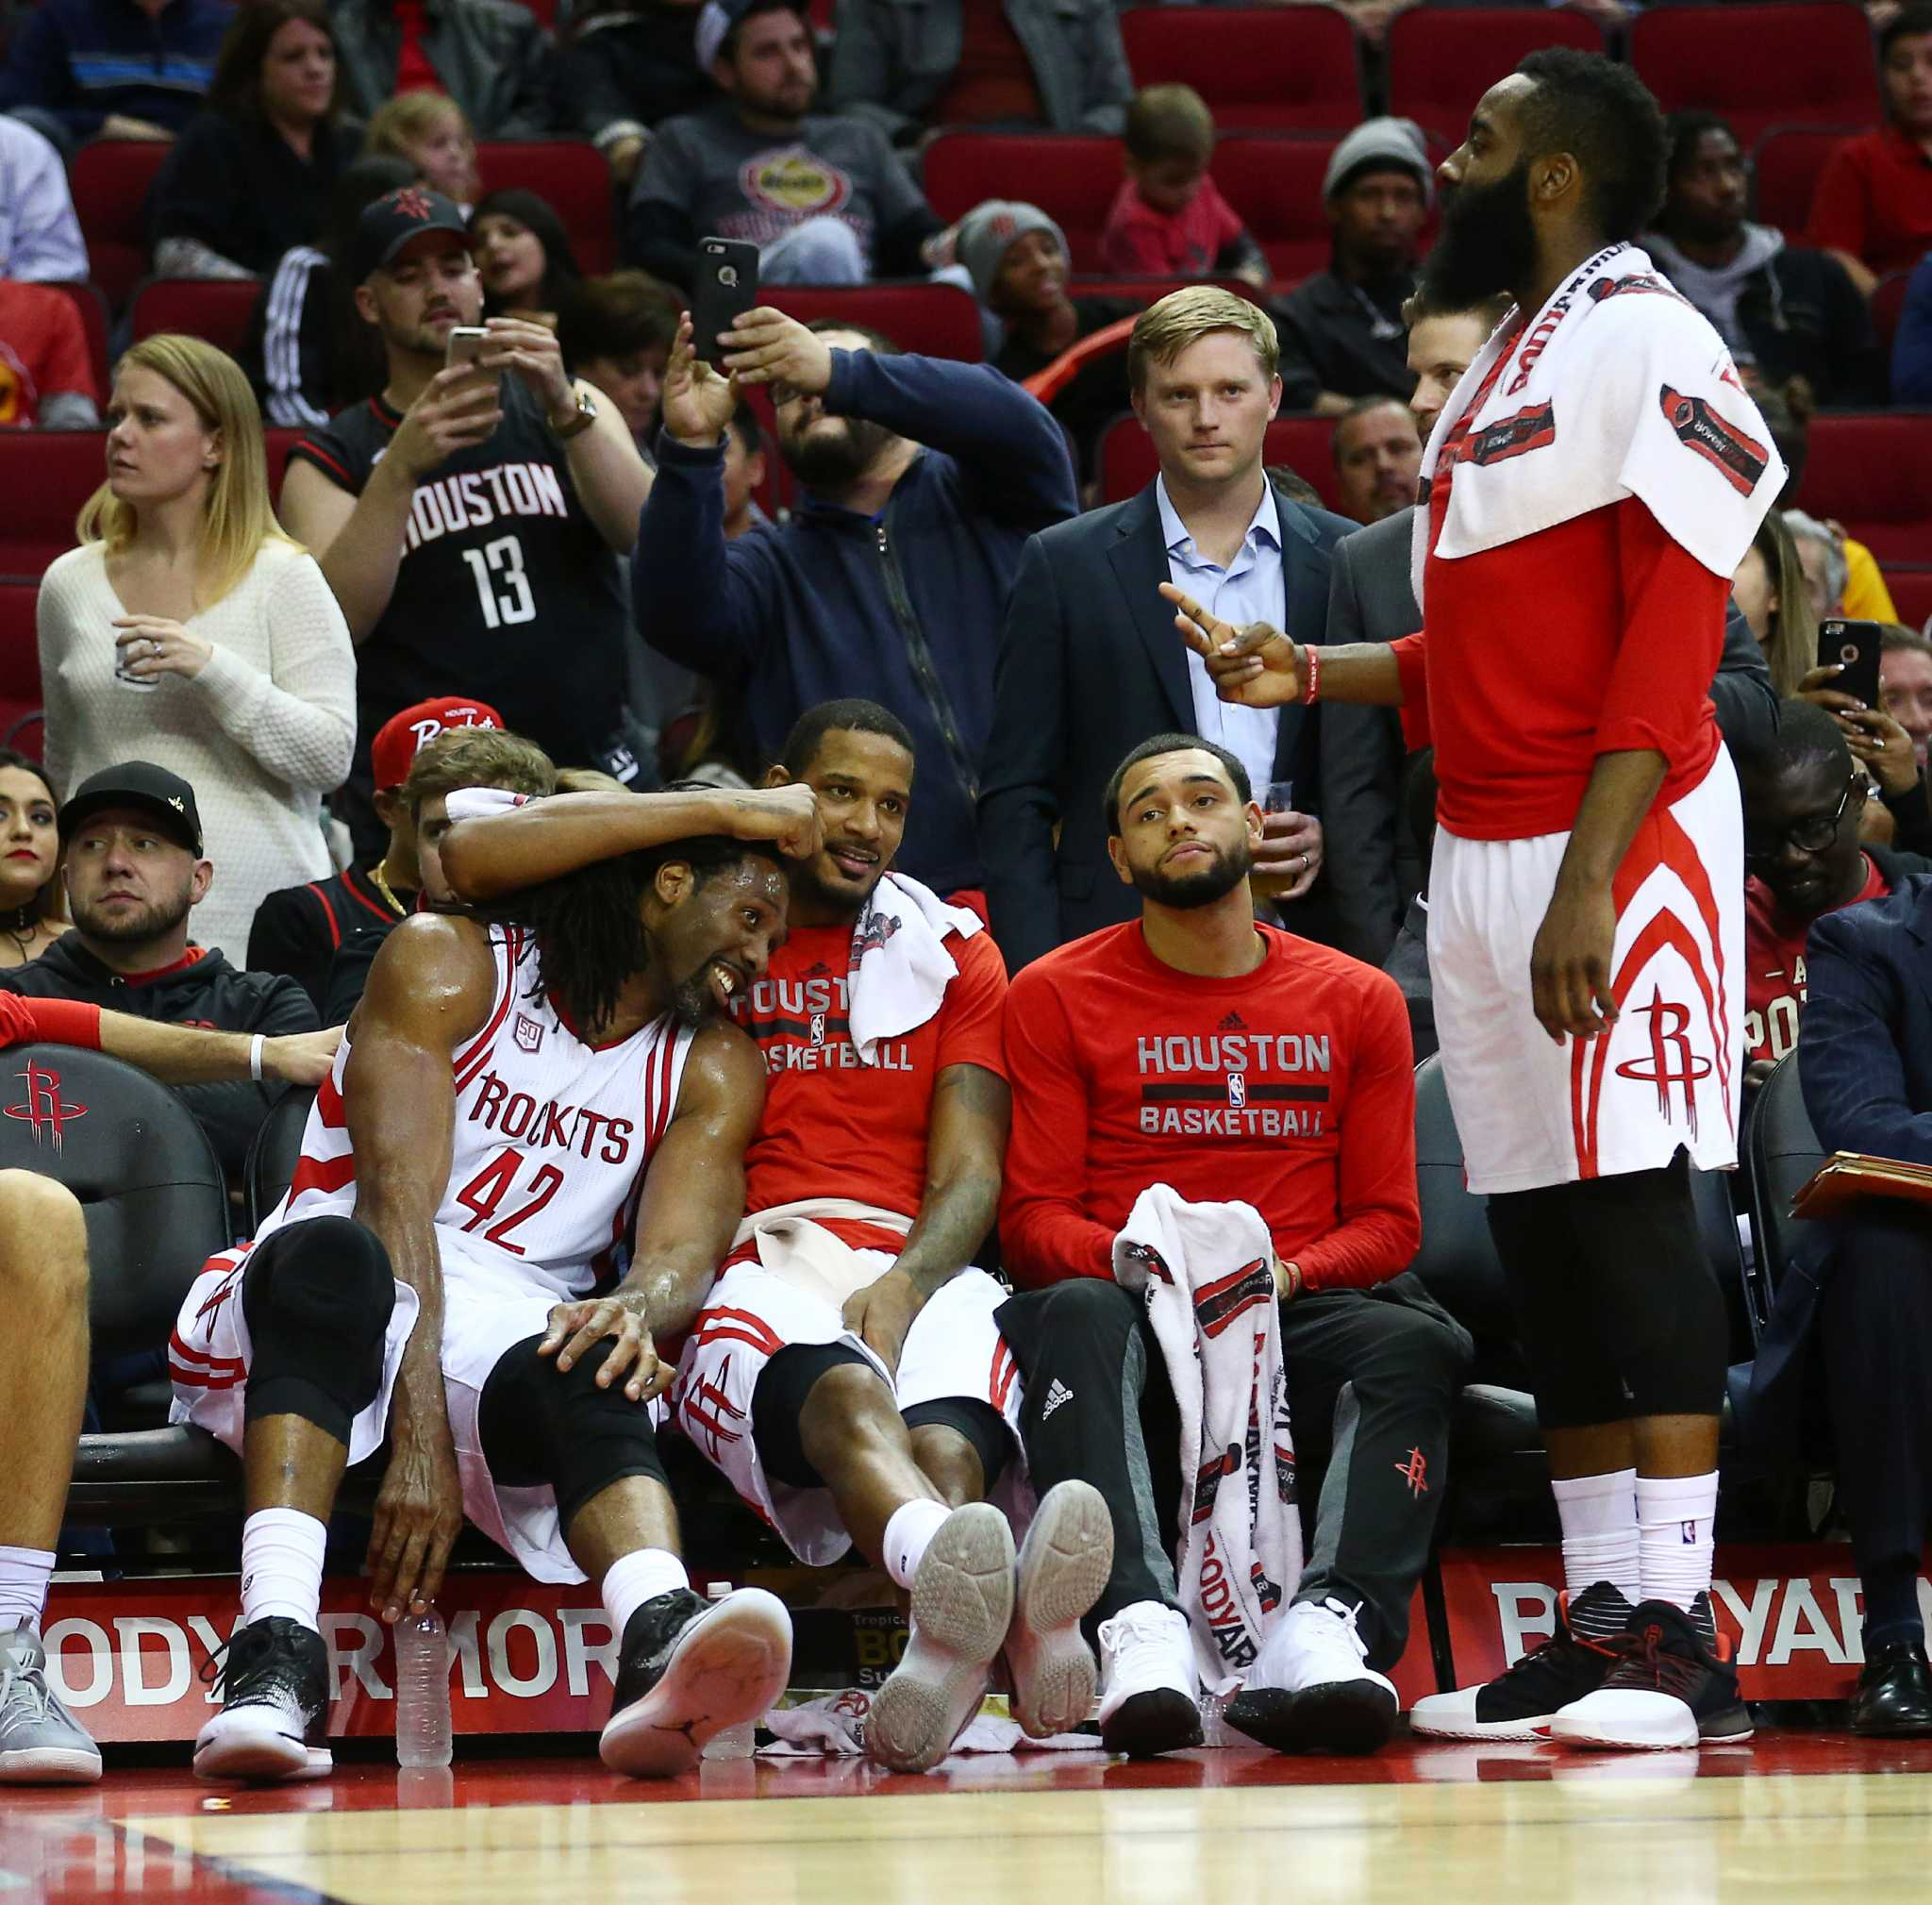 Houston Rockets Upcoming Home Games: Rockets Welcome February Full Of Home Games